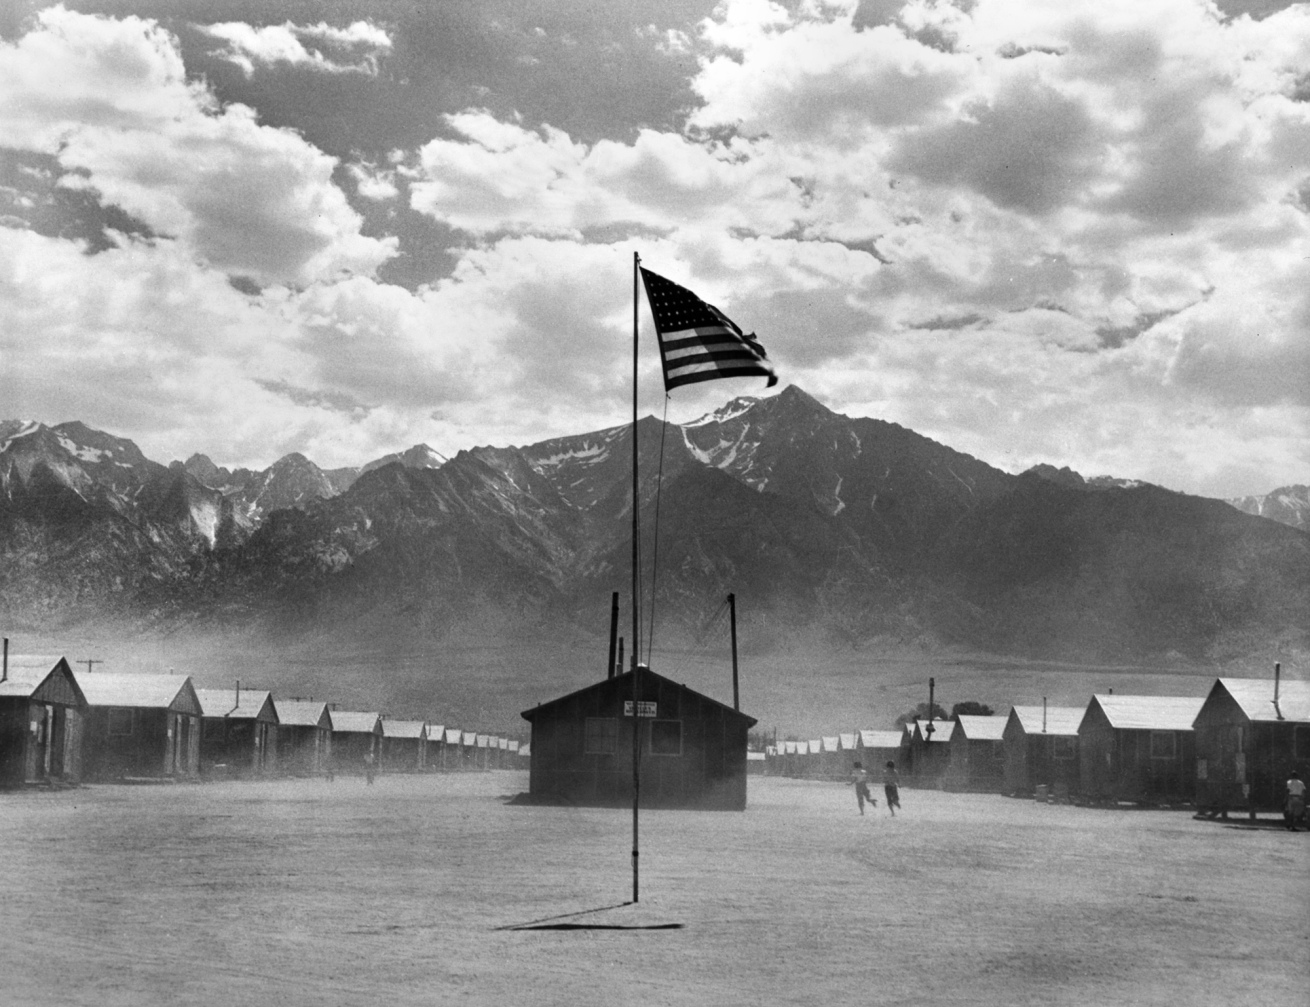 Fotó: Dorothea Lange: Manzanar Relocation Center, Manzanar, California, 1942 © Collection of the Oakland Museum of California, gift of Paul S. Taylor<br /><br />